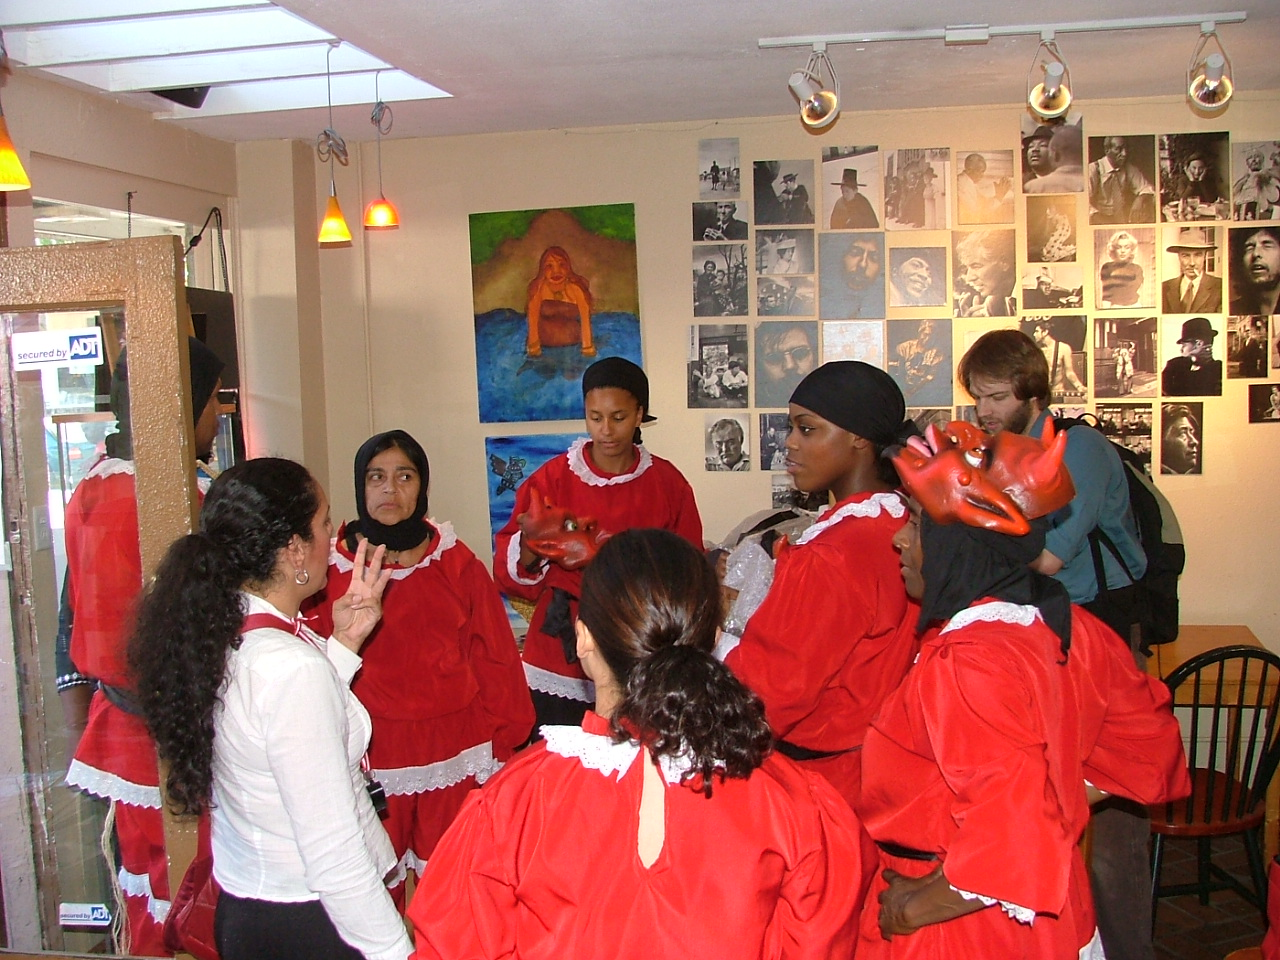 Choreographer instructs troupe before performance